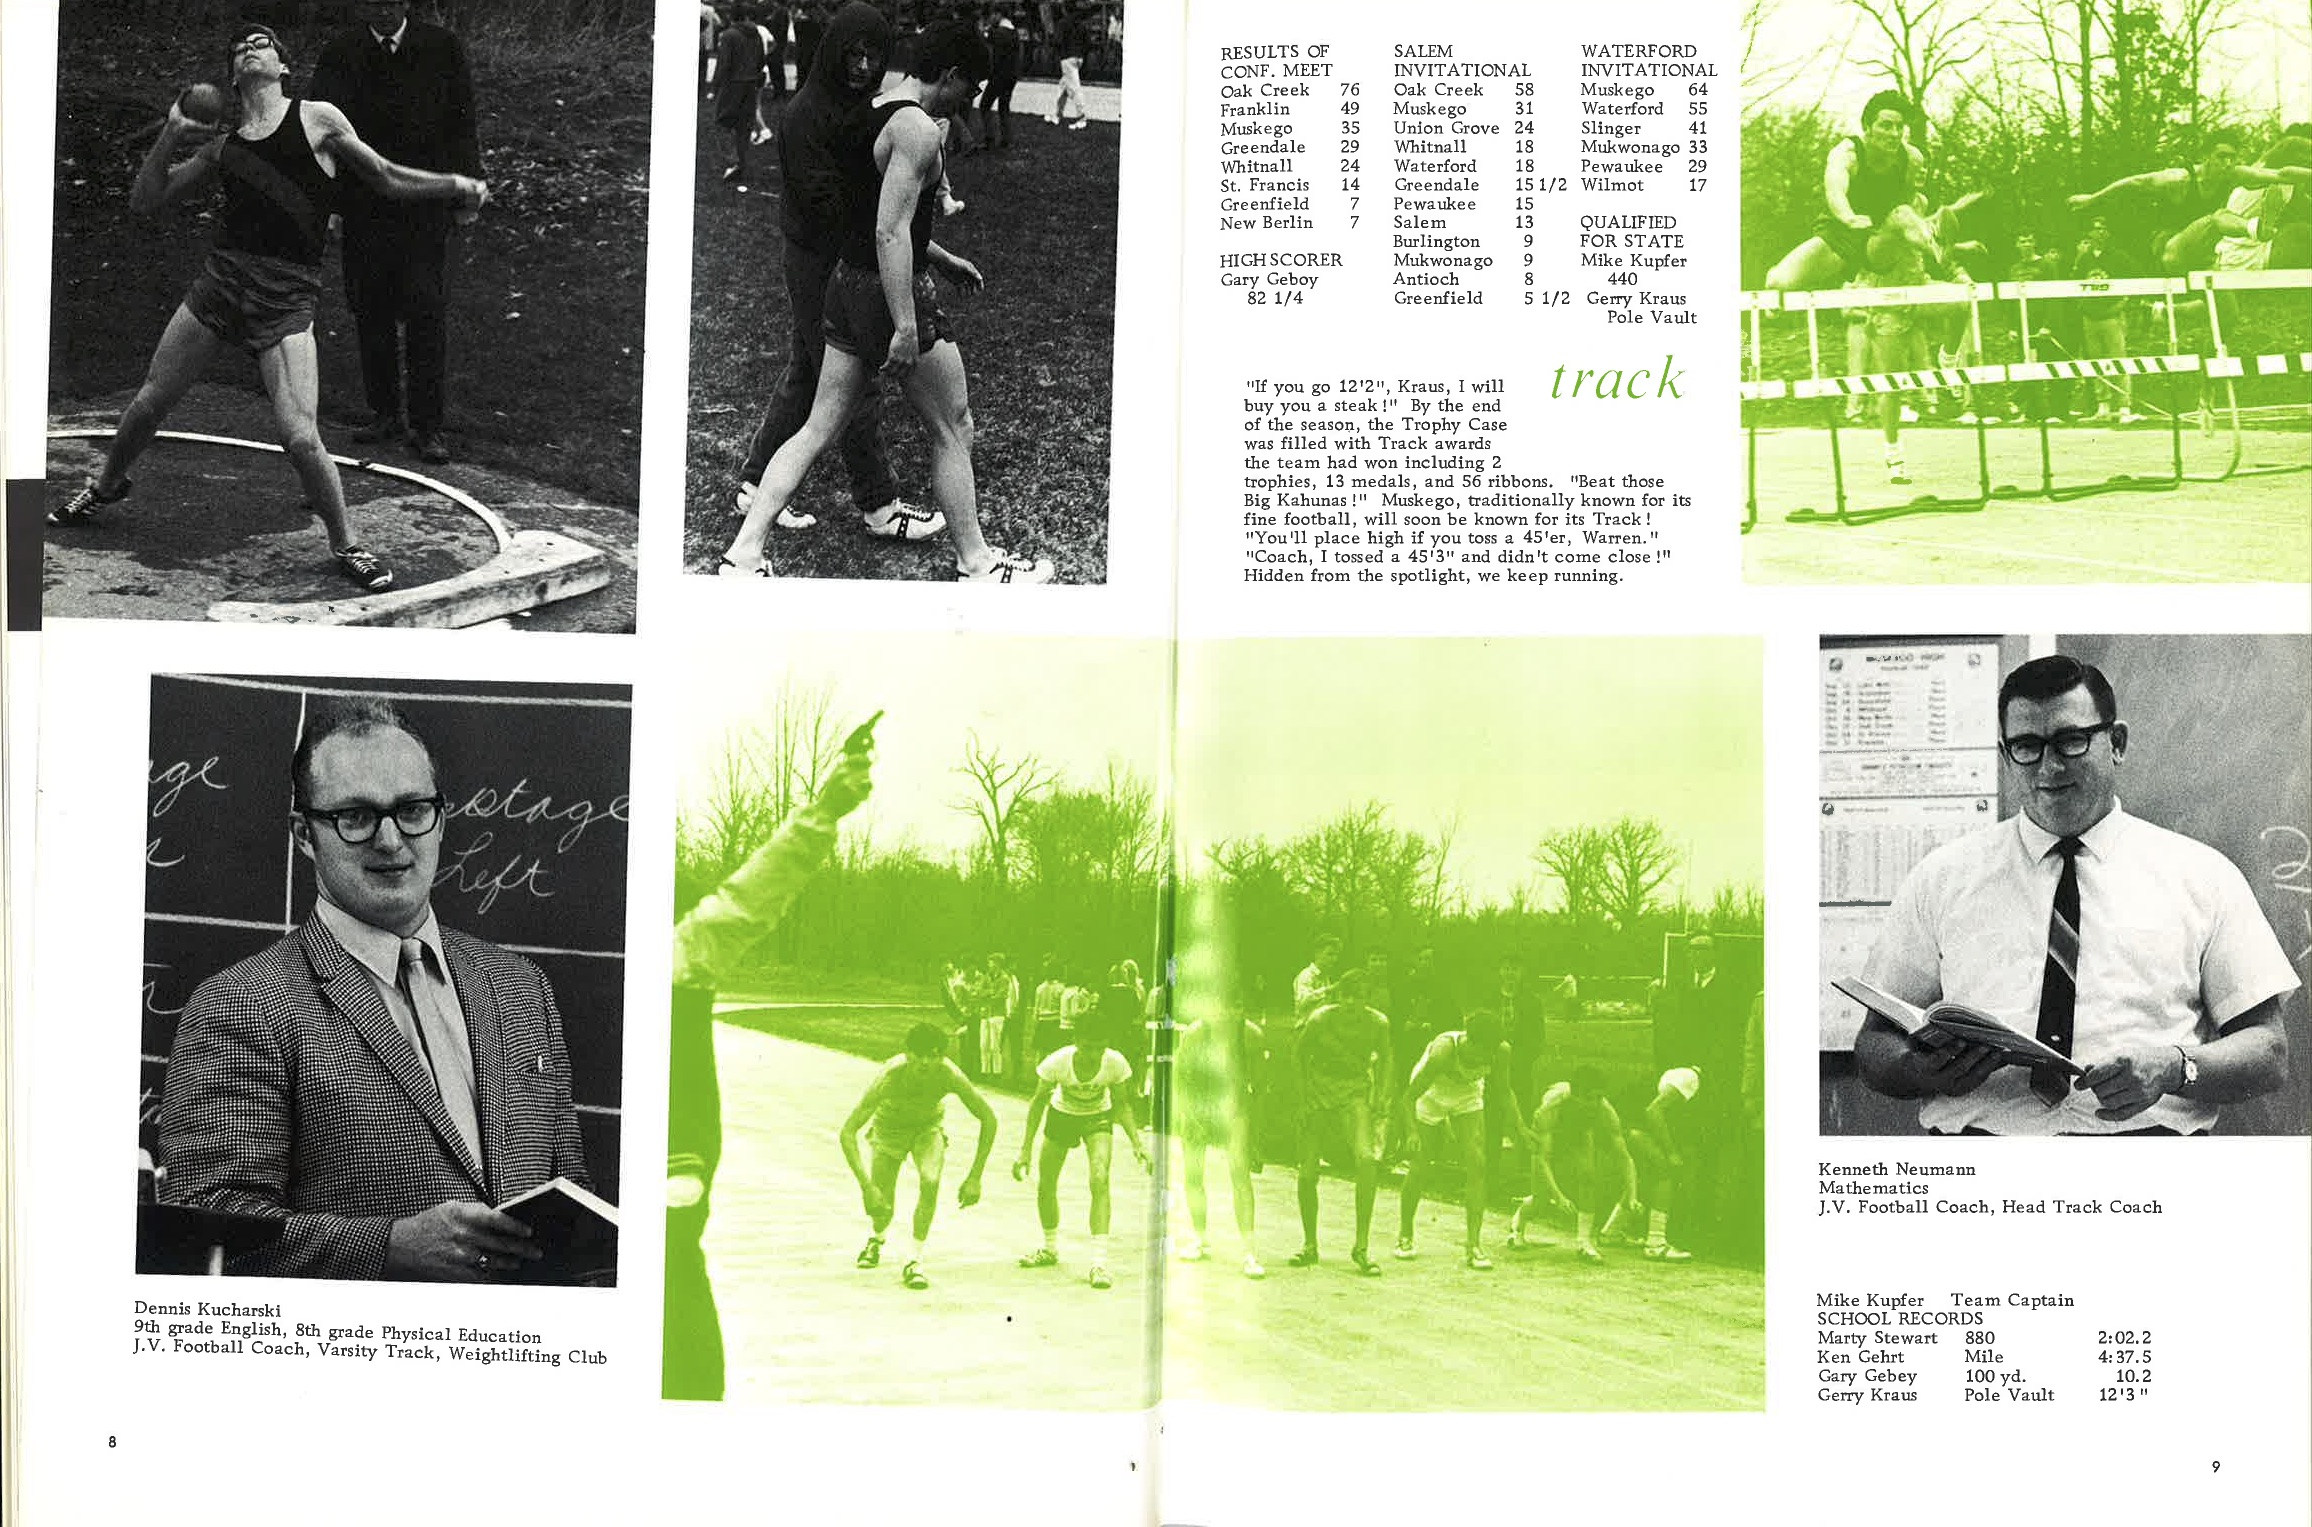 1970_Yearbook_8-9.jpg